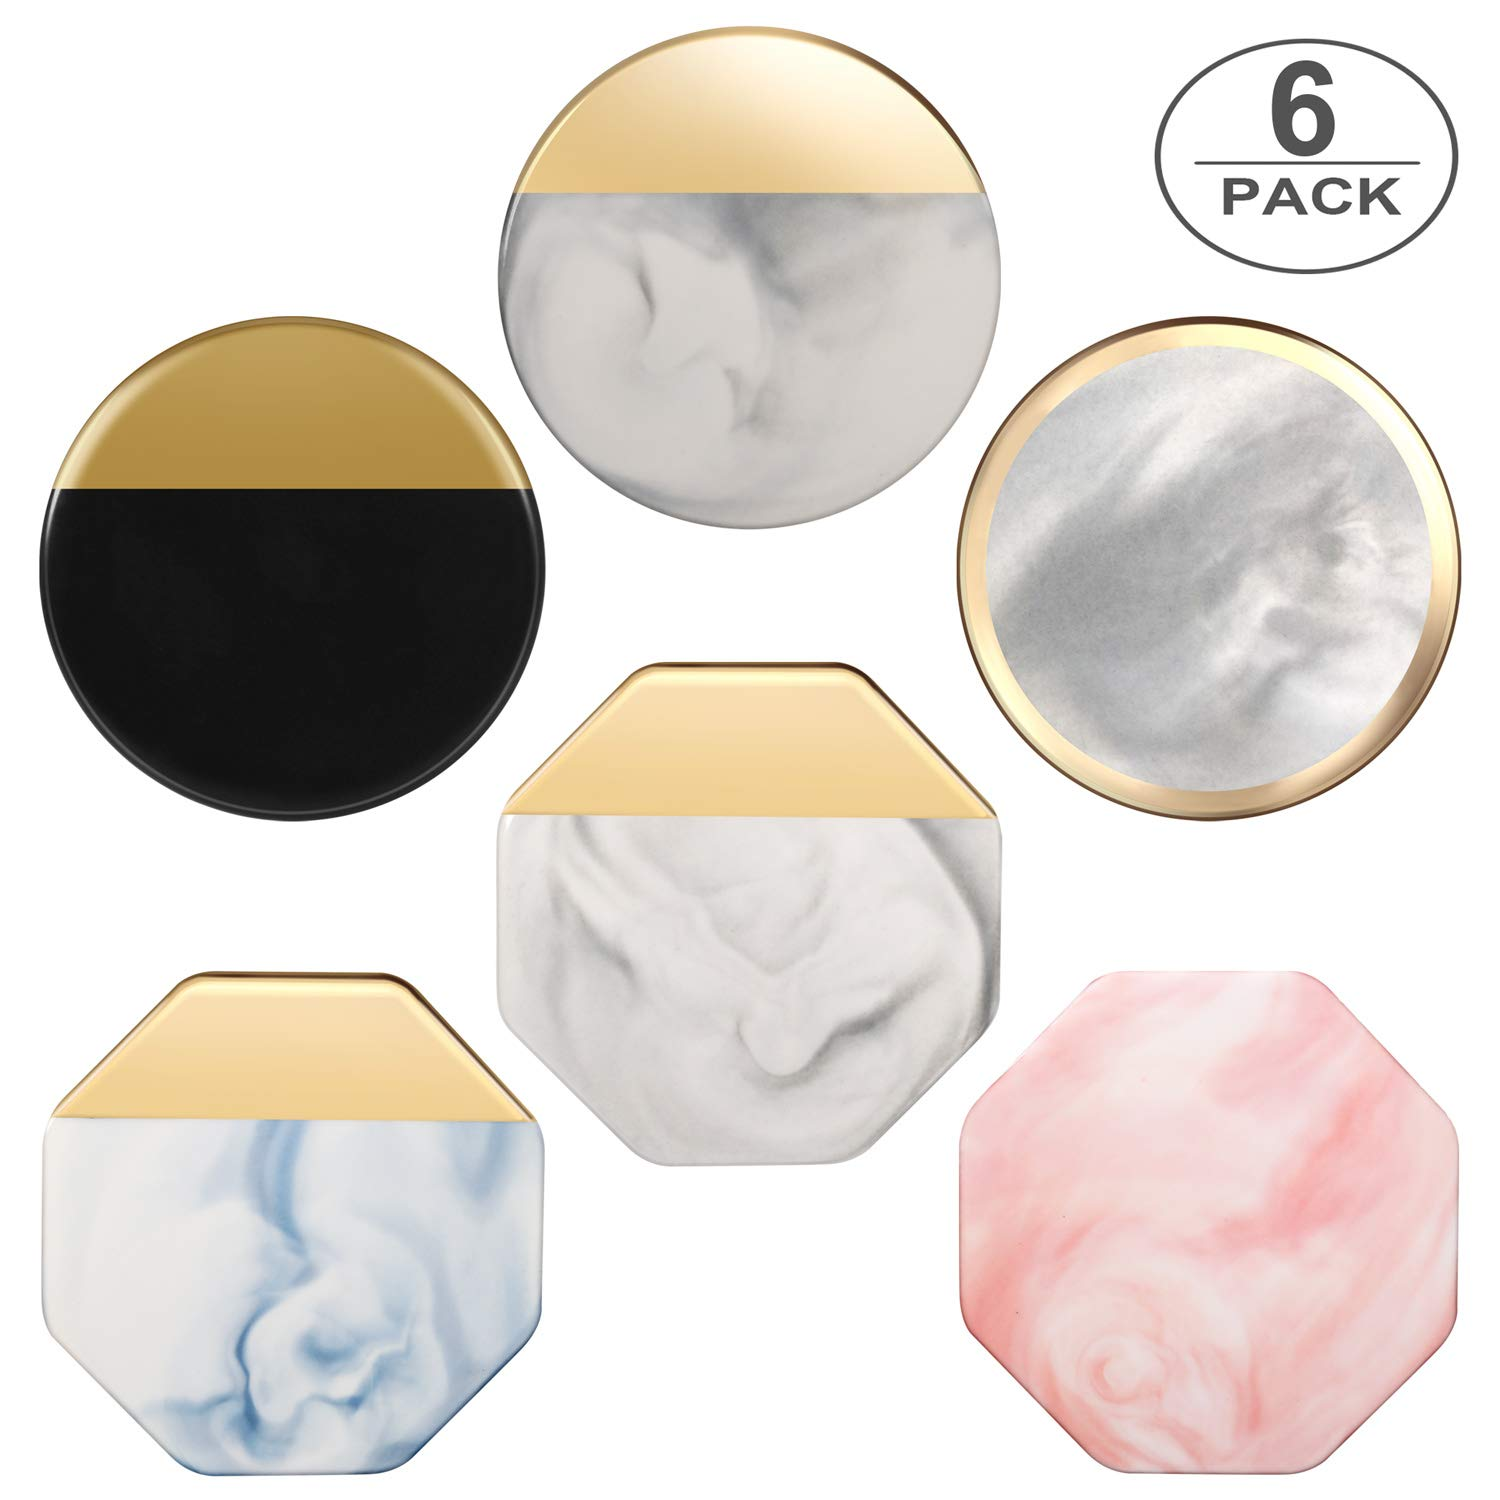 Ceramic Mug Coasters Bar Coaster, TUTUWEN Adiabatic Stone Drink Coaster Marble Pattern Gold-plated Cup Mat Sets with Non-Slip Cork Base [Non-Absorbent], Elegant Decor Gift in Home/Office -6 Pcs by TUTUWEN